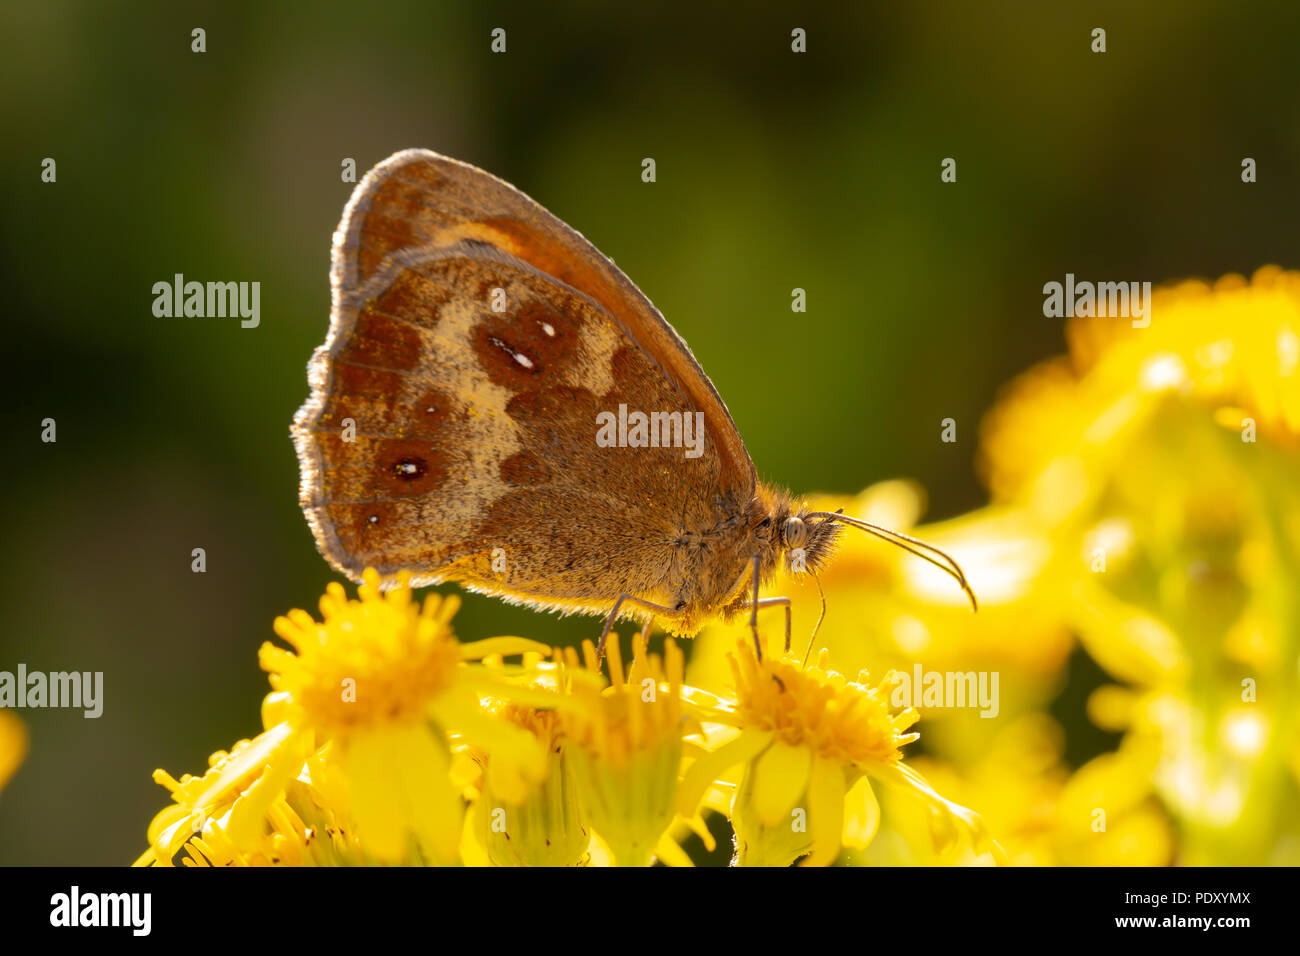 Macro shot of Gatekeeper butterfly sitting on Ragwort flowers feeding. - Stock Image